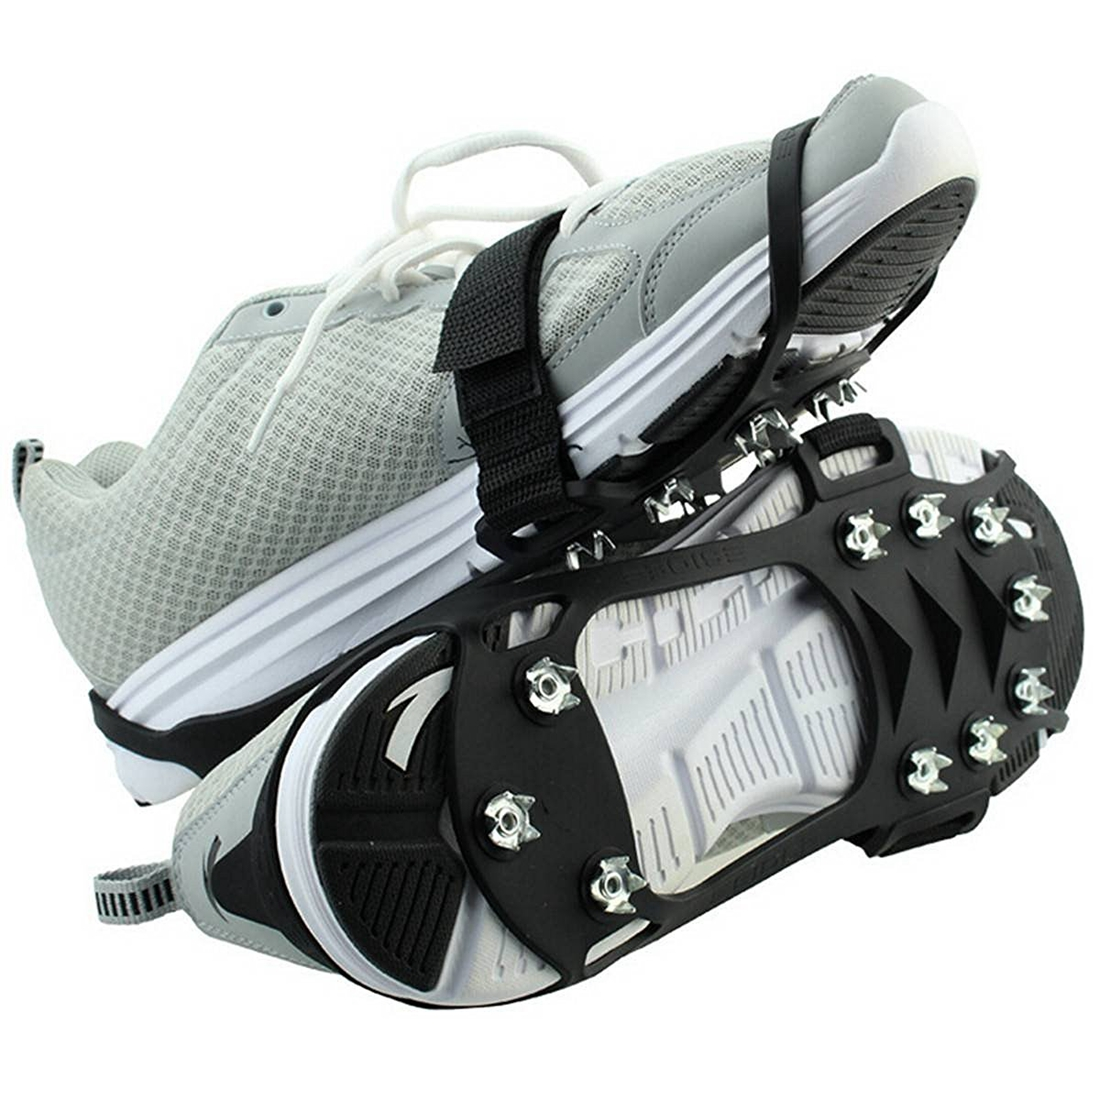 DCOS Shoe spikes Shoe claws, anti-slip crampons shoes, spikes Snow chain for the boot все цены